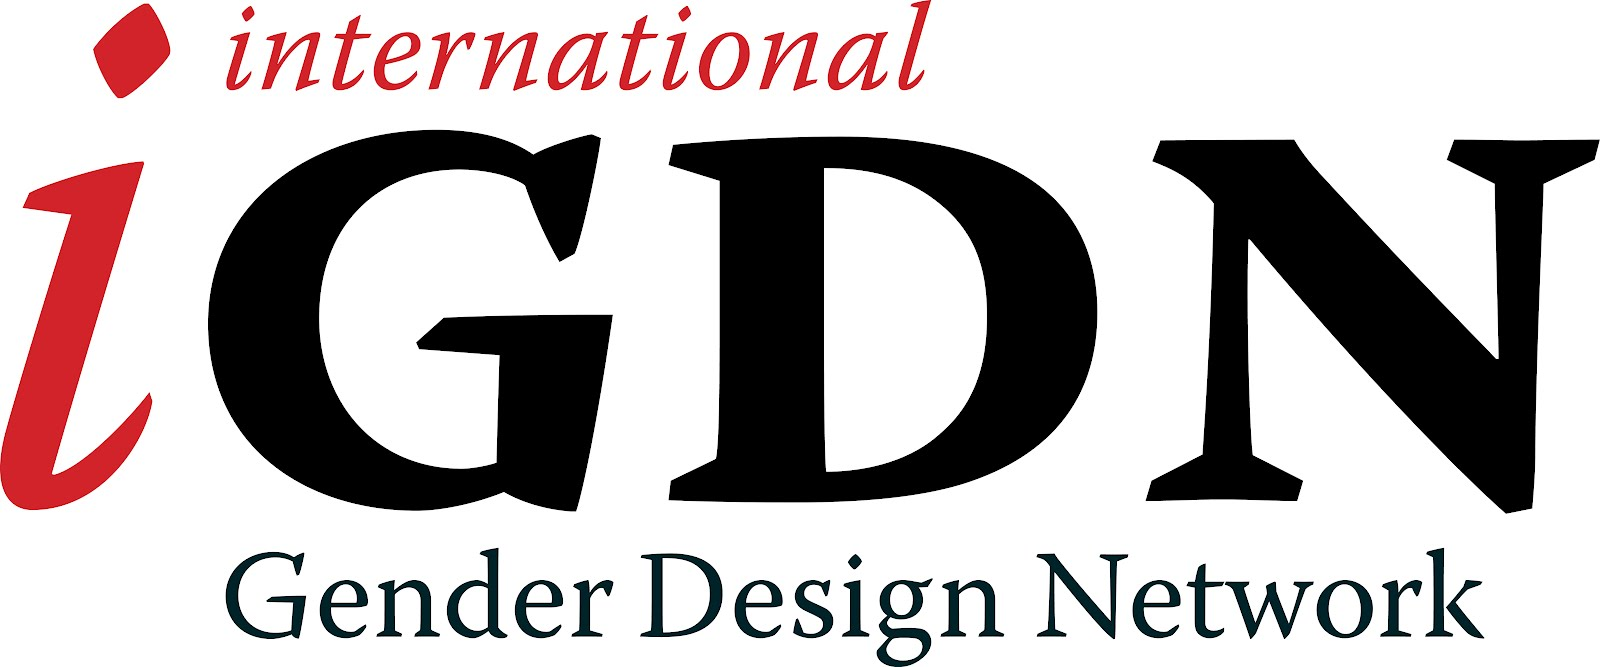 international Gender Design Network (iGDN)